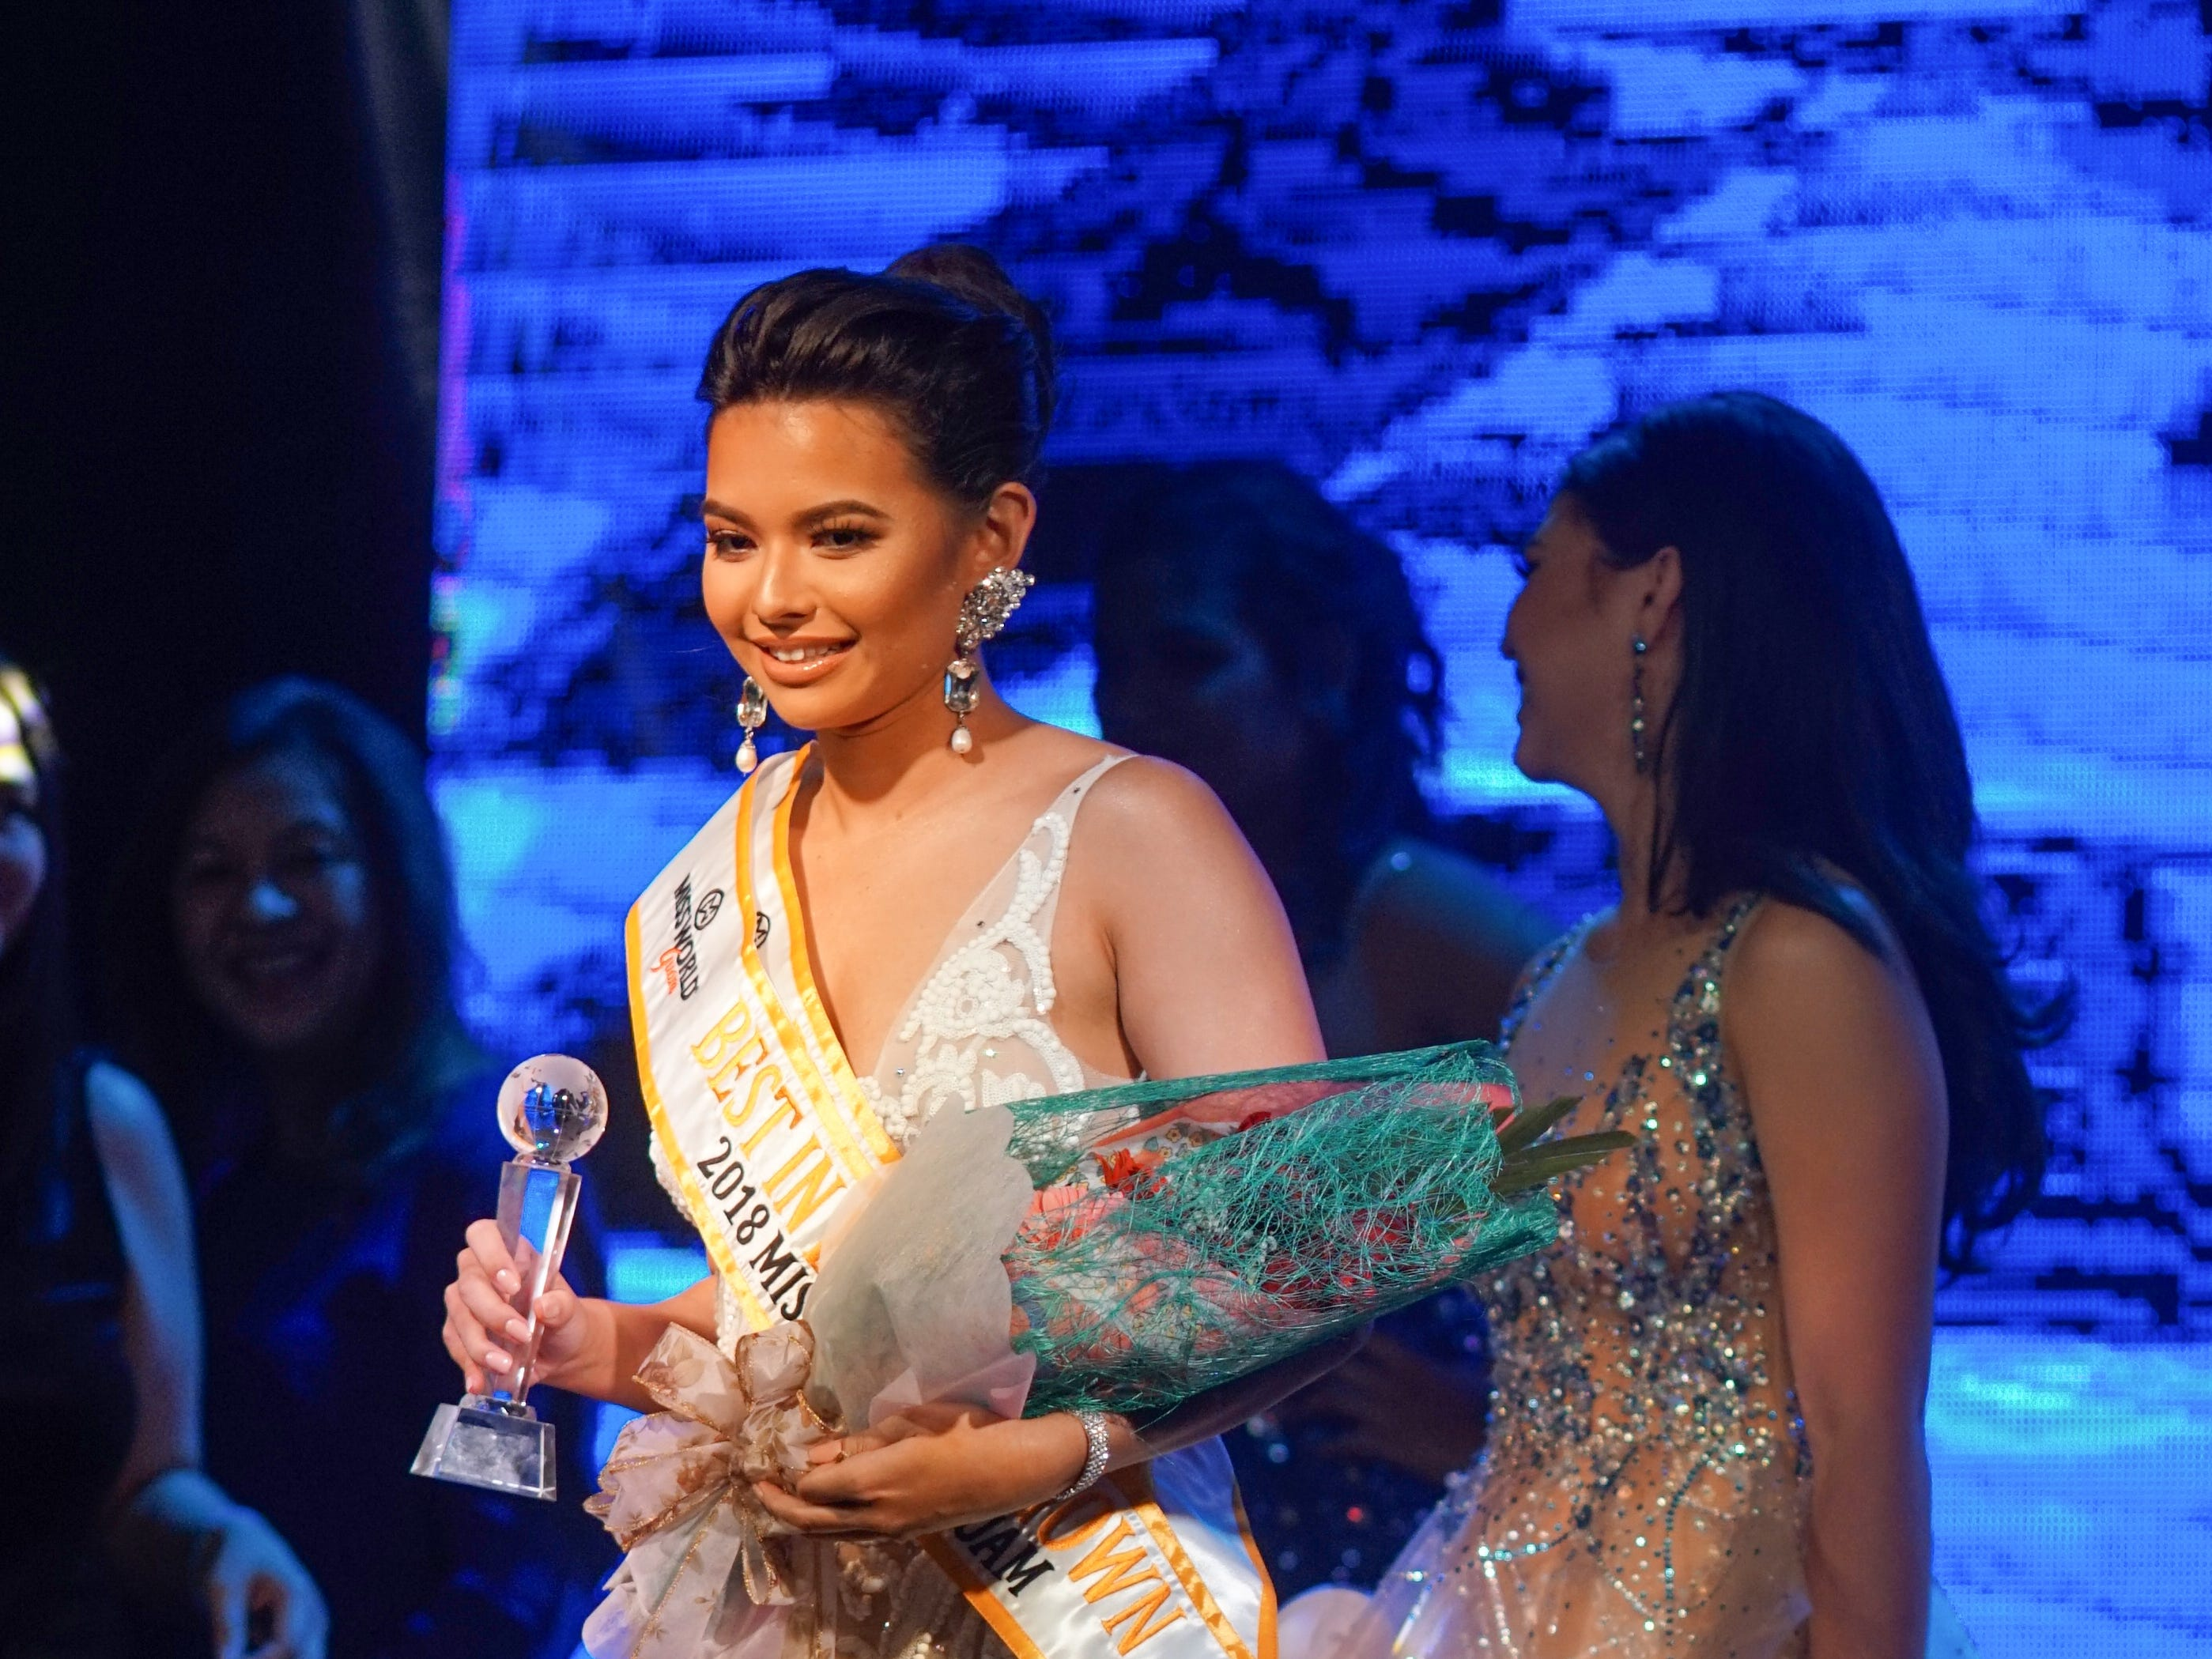 Contestant #2 Gianna Camacho Sgambelluri, 18, from Barrigada, wins Best In Evening Gown category at the  2018 Miss World Guam pageant held at Sheraton Laguna Guam Resort.